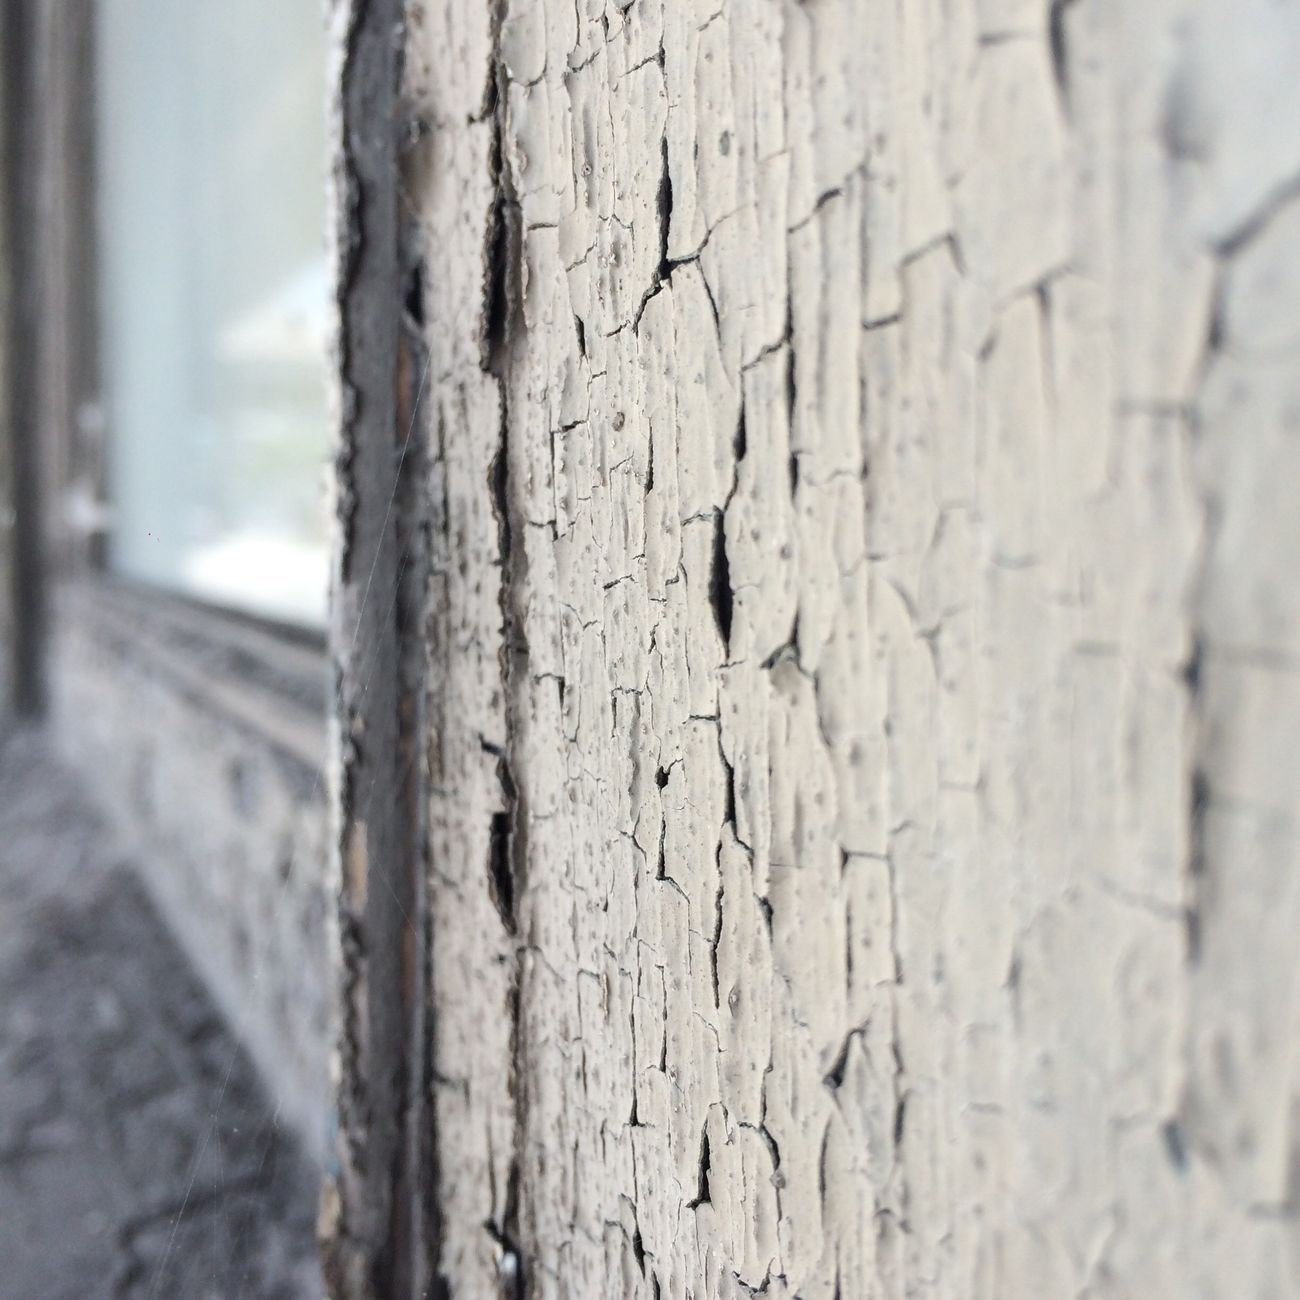 EyeEm Selects Peeling paint and vanishing point Textured  Close-up Day No People Wood - Material Tree Trunk Cracked Built Structure Outdoors Nature Architecture Vanishing Point